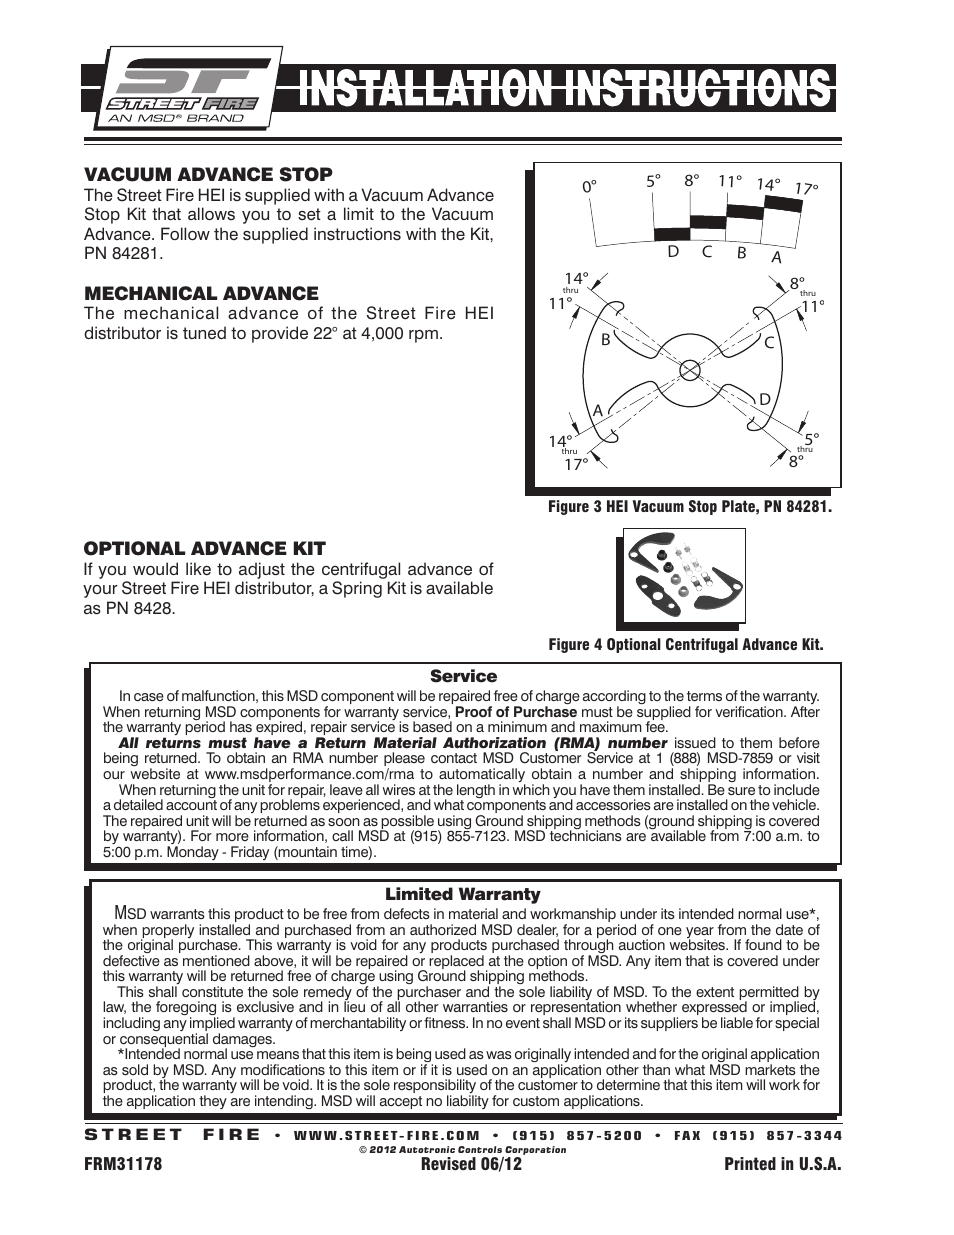 Holley Hp Efi Wiring Diagram 28 Images Msd Street Fire Distributor The Best 8362 Chevrolet V8 Gm Hei Installation Page2resize665